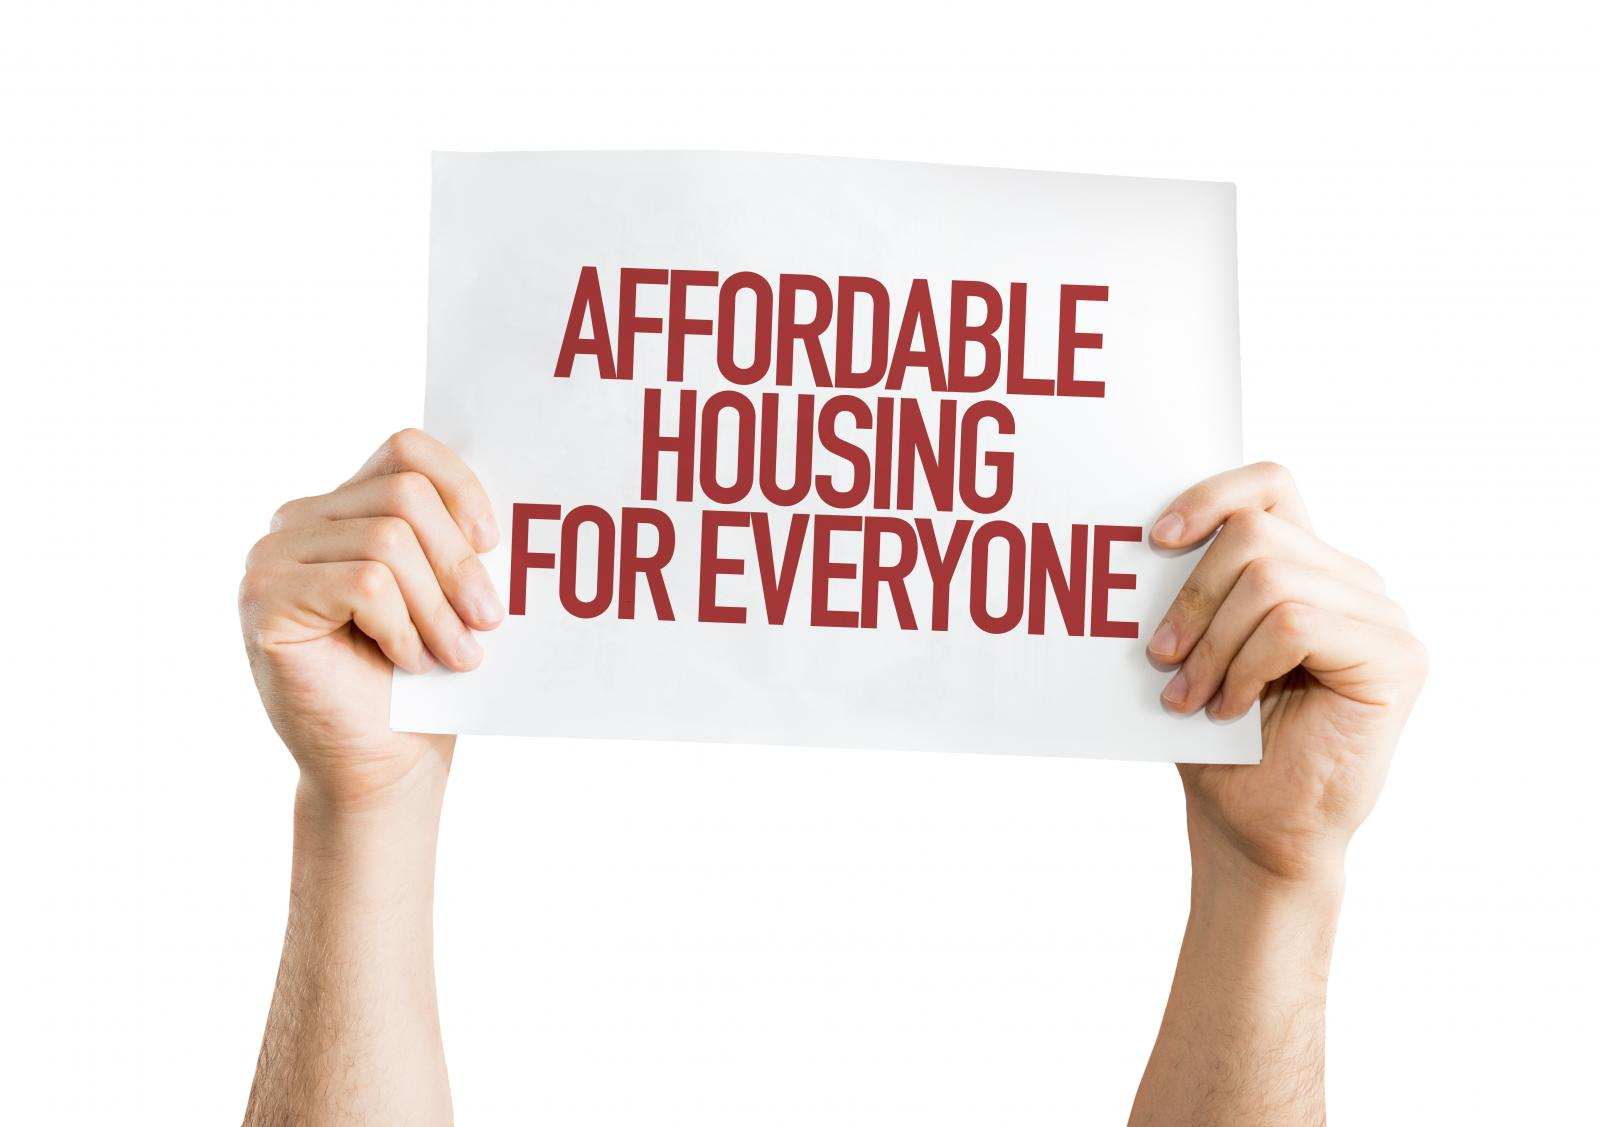 Affordable Housing For Everyone